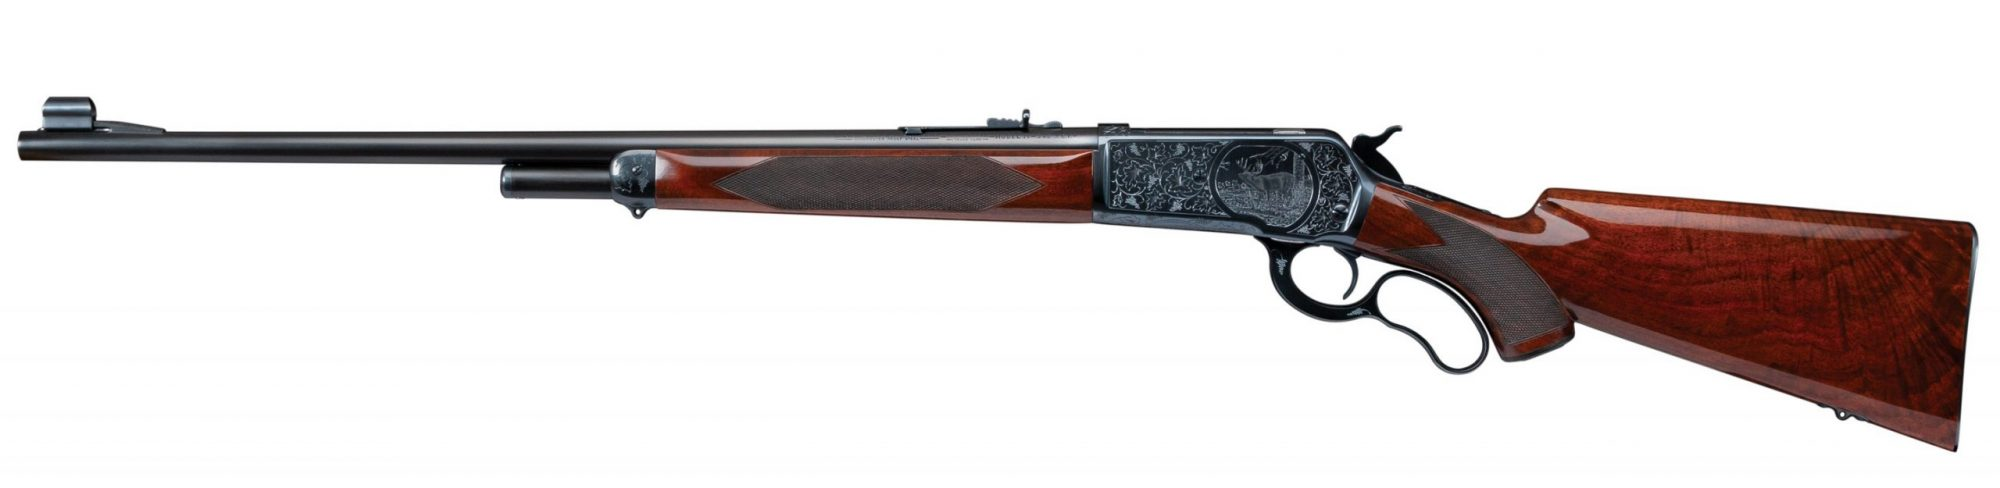 Photo of a restored Winchester Model 71 with custom engraving